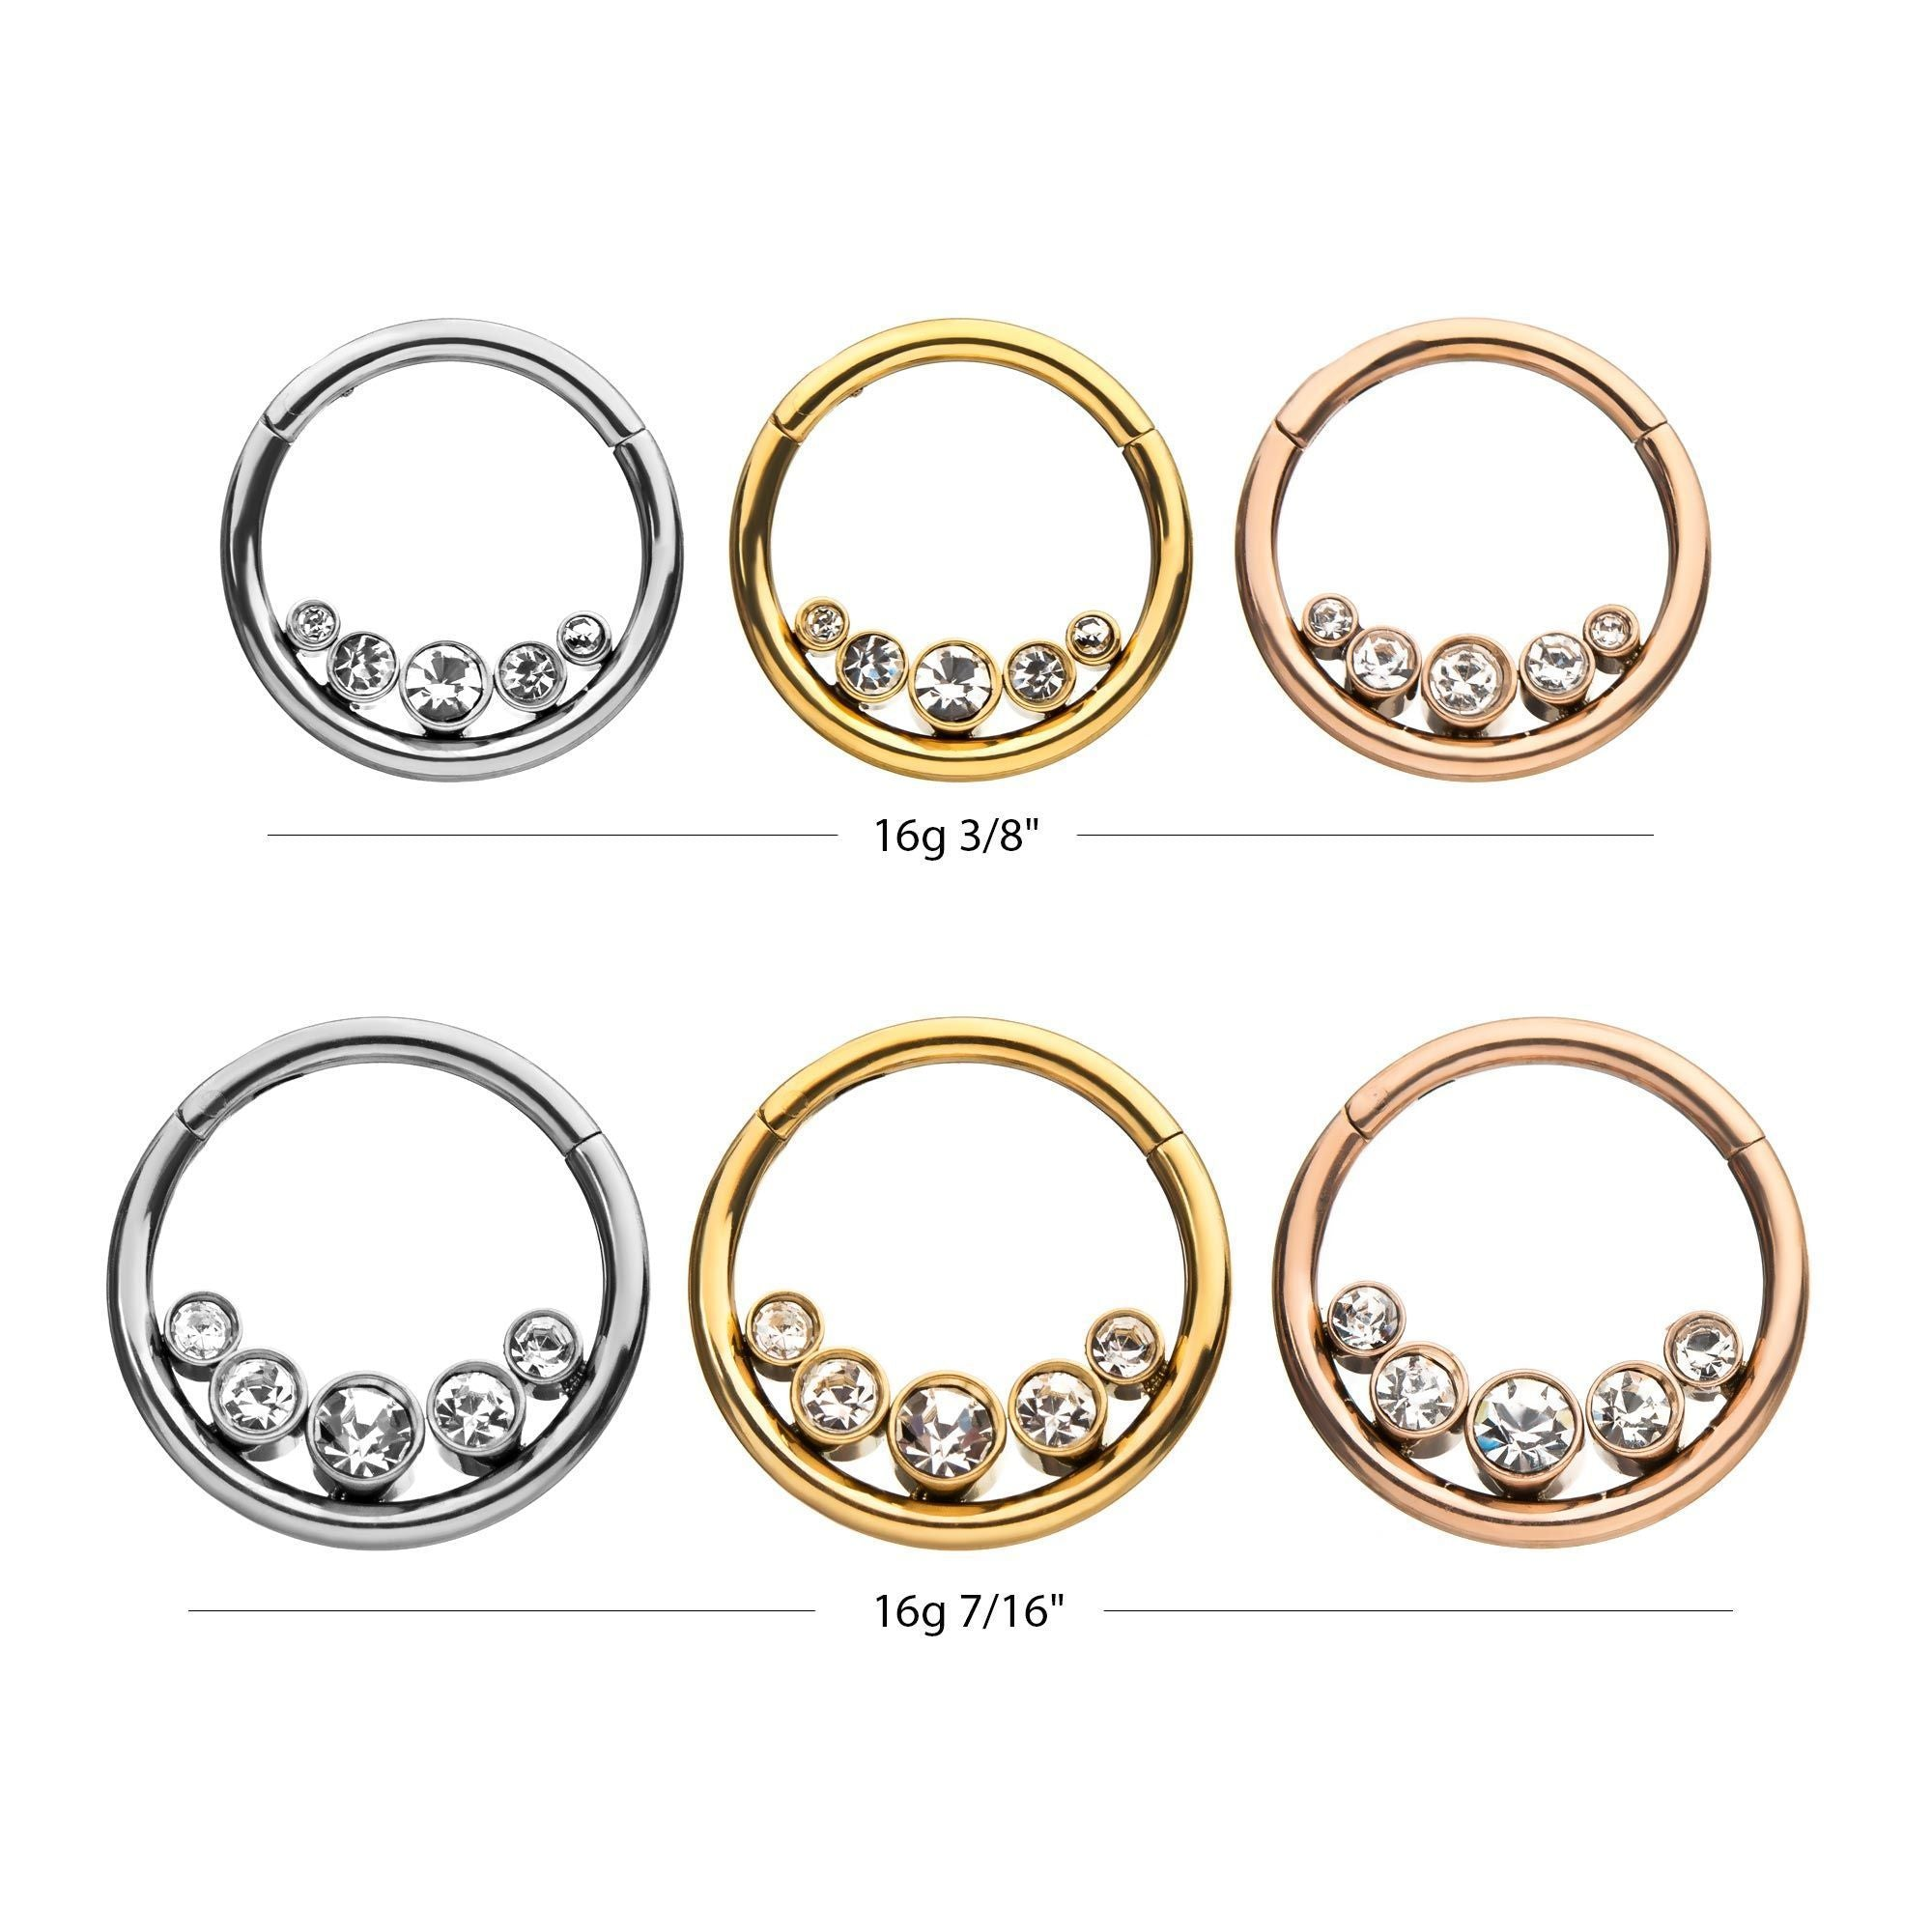 Stainless Steel Body Jewelry Fake Expander with Clear CZ /& O-Rings 16g